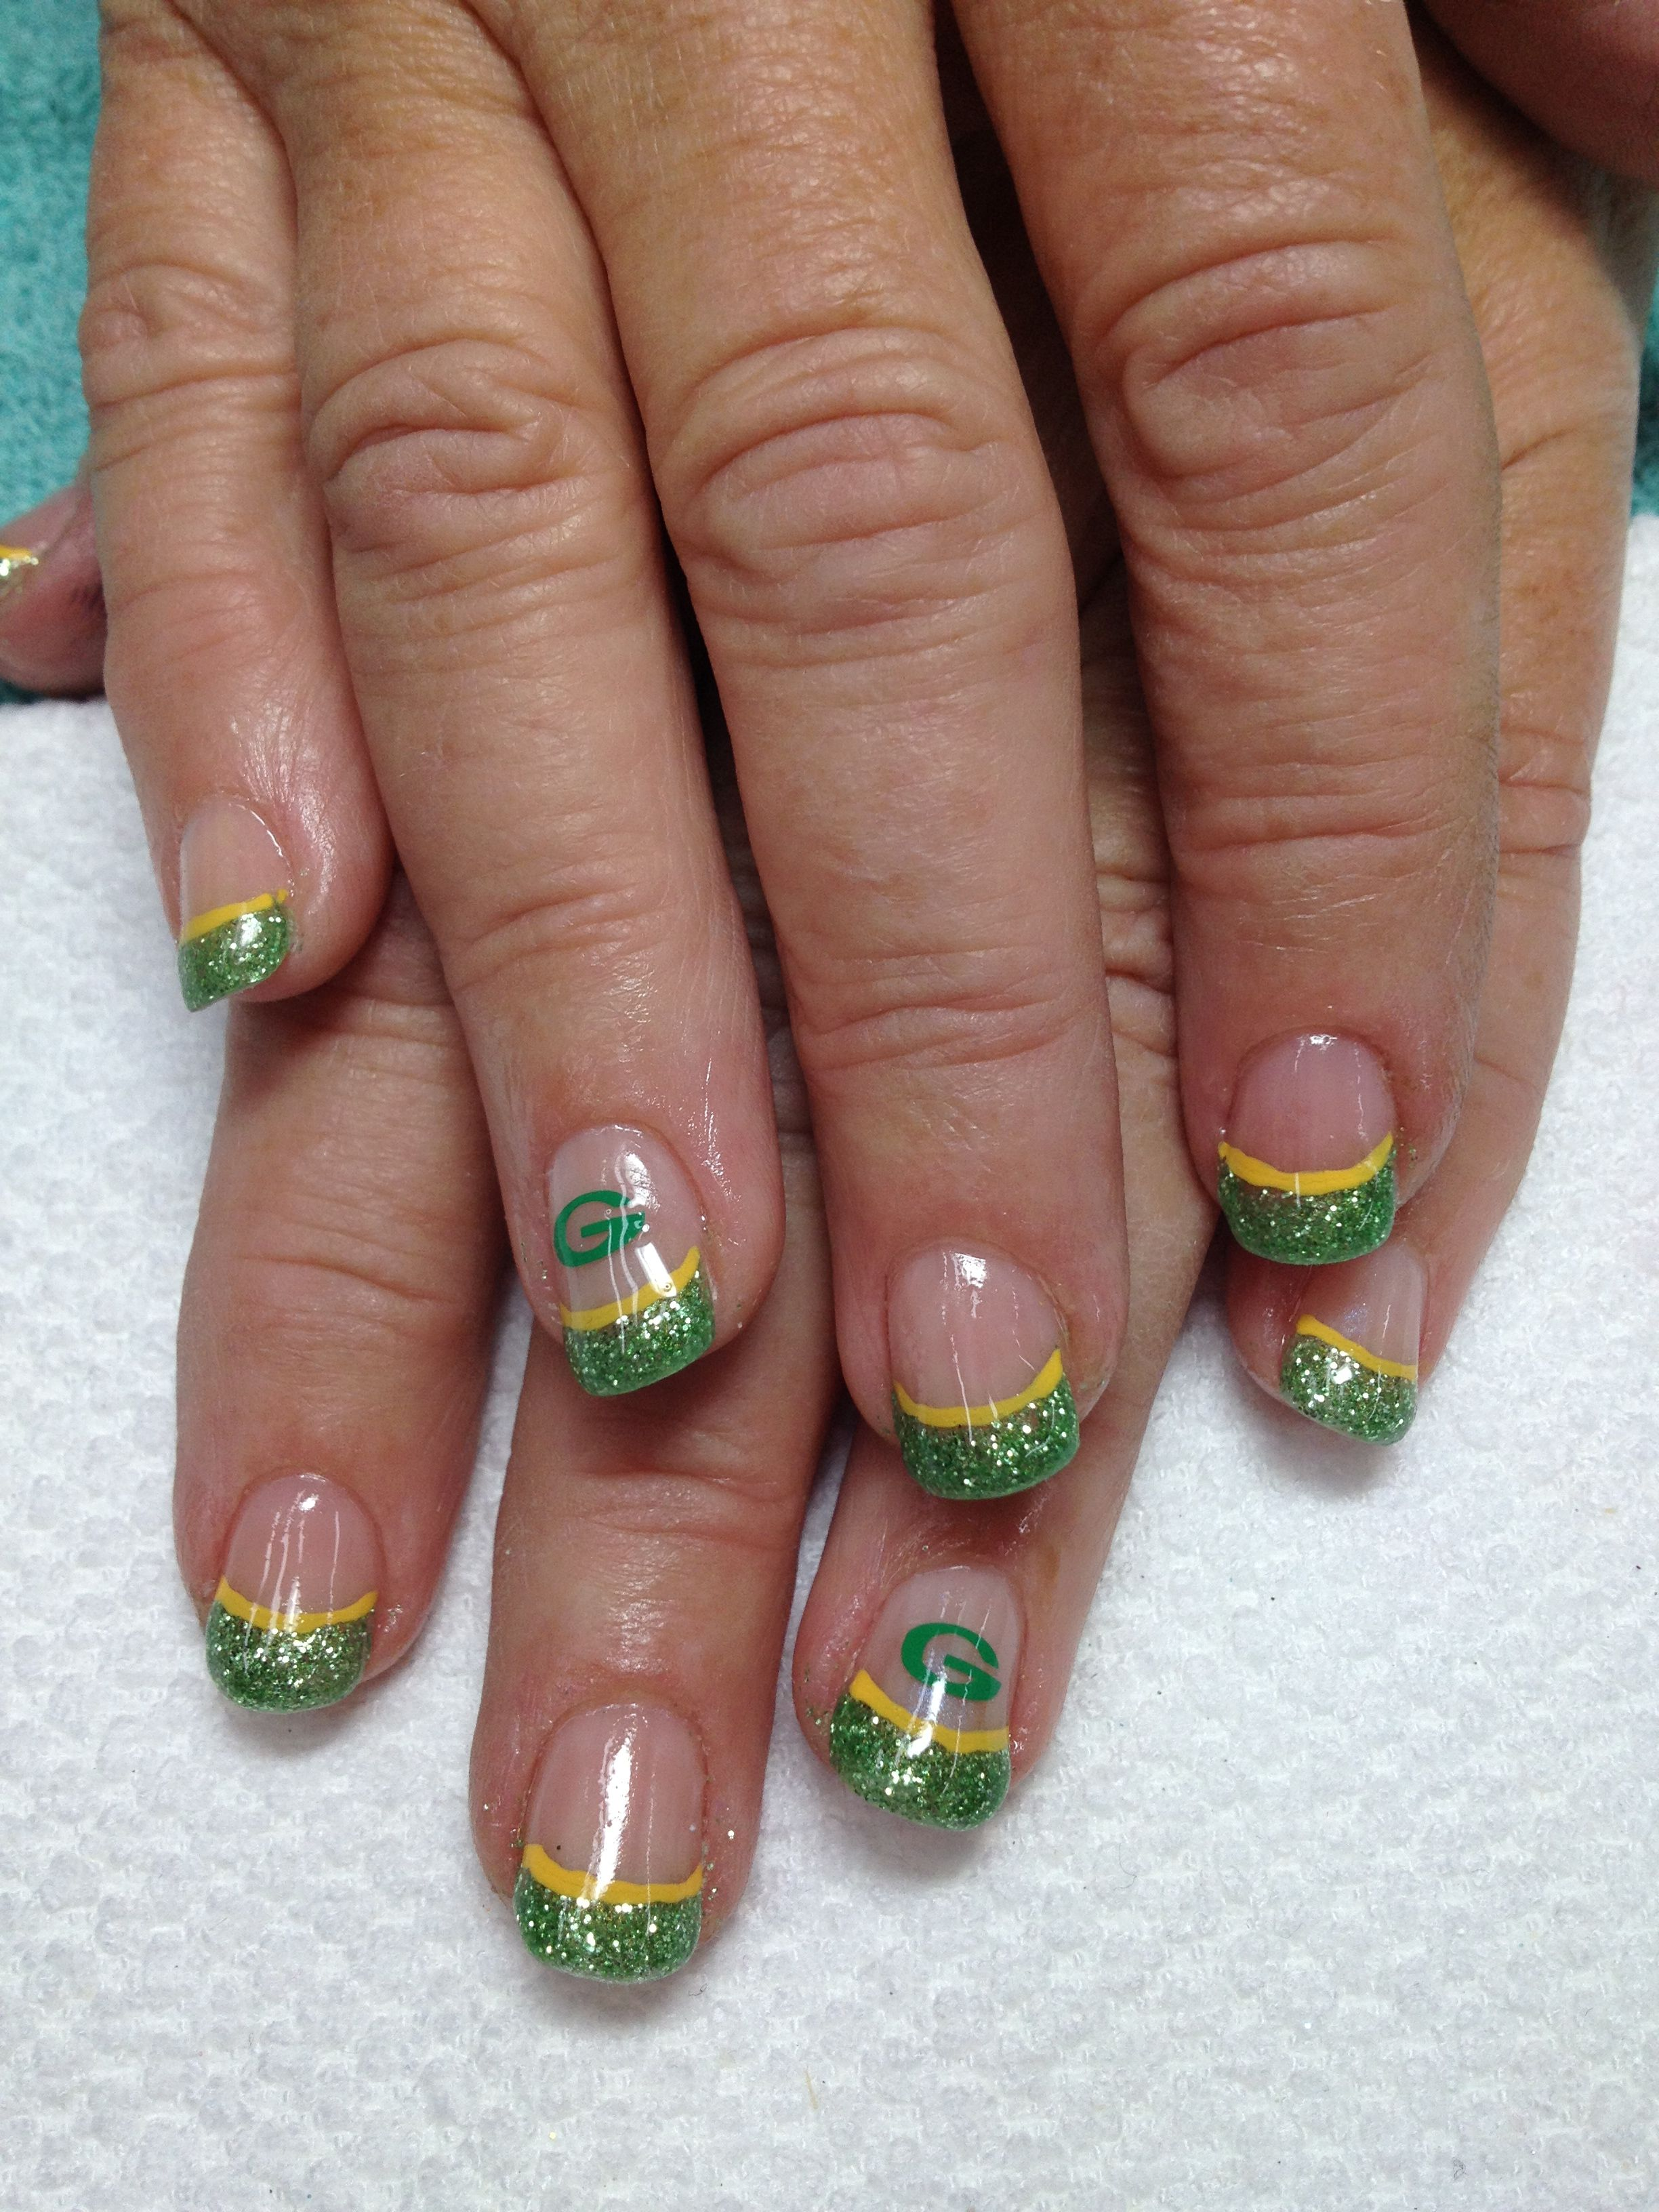 The first set of Packer nails for the season!! Very pretty